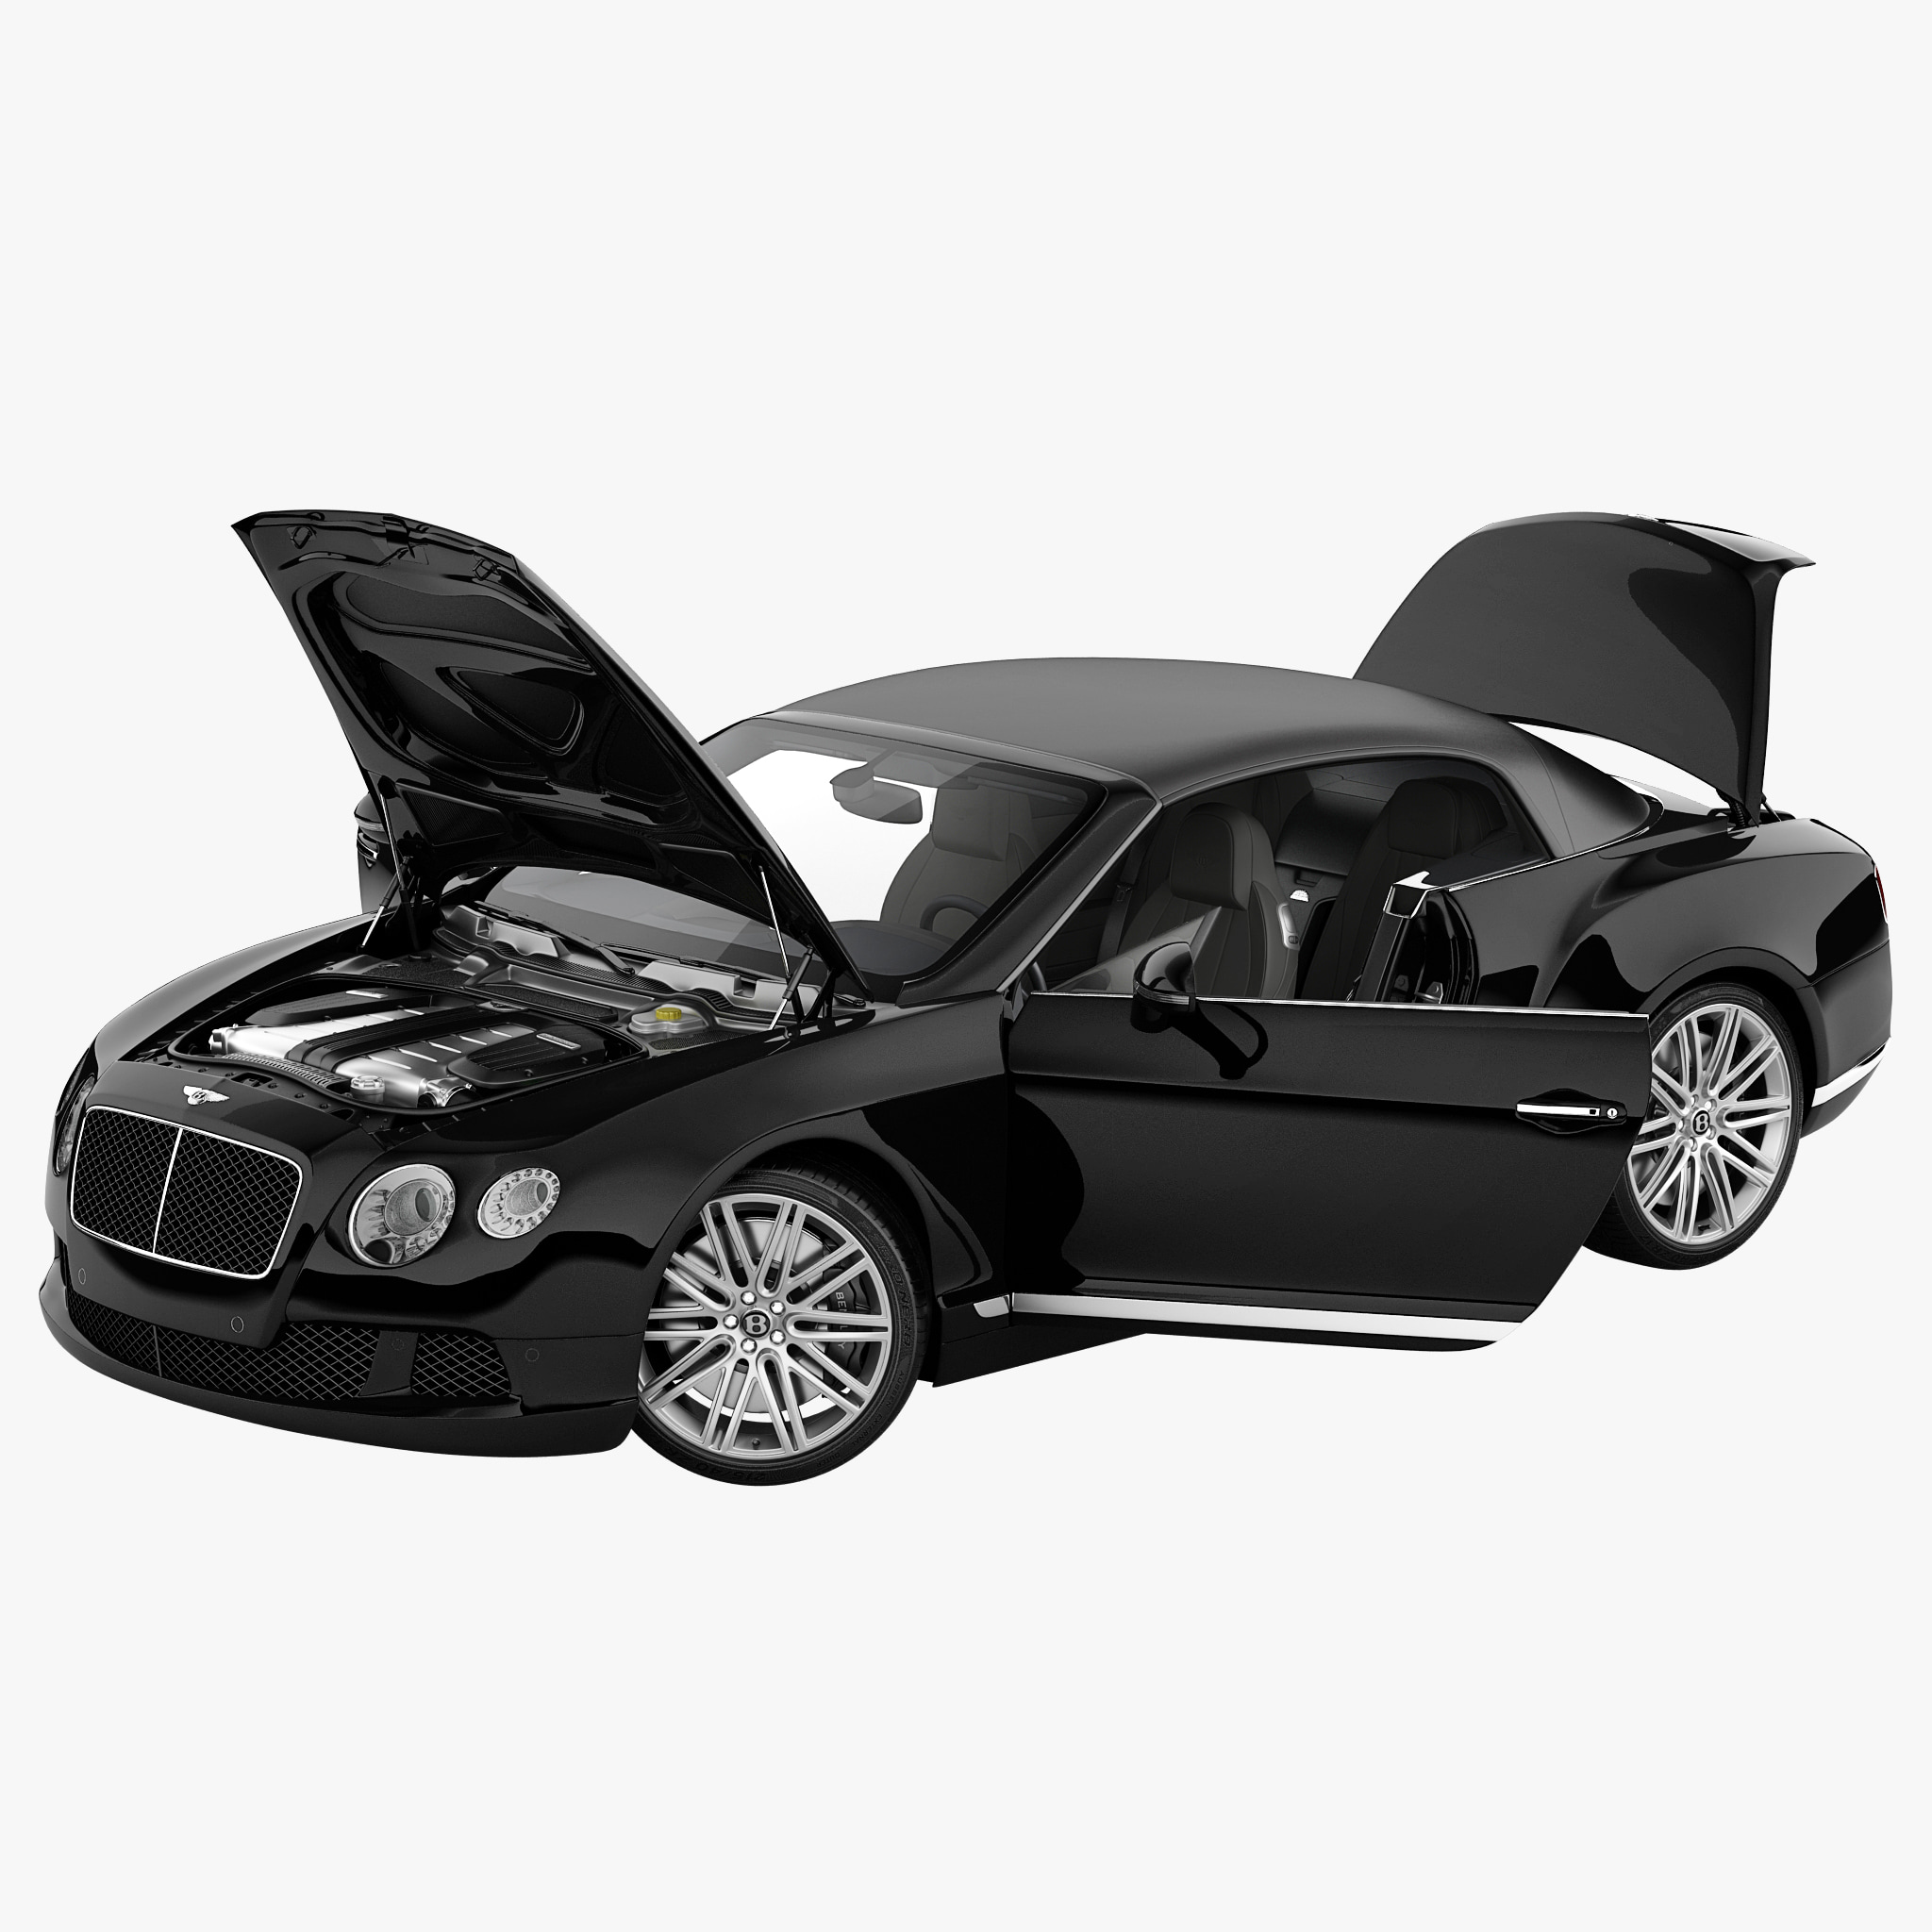 Bentley Continental GT 2014 Rigged_1.jpg